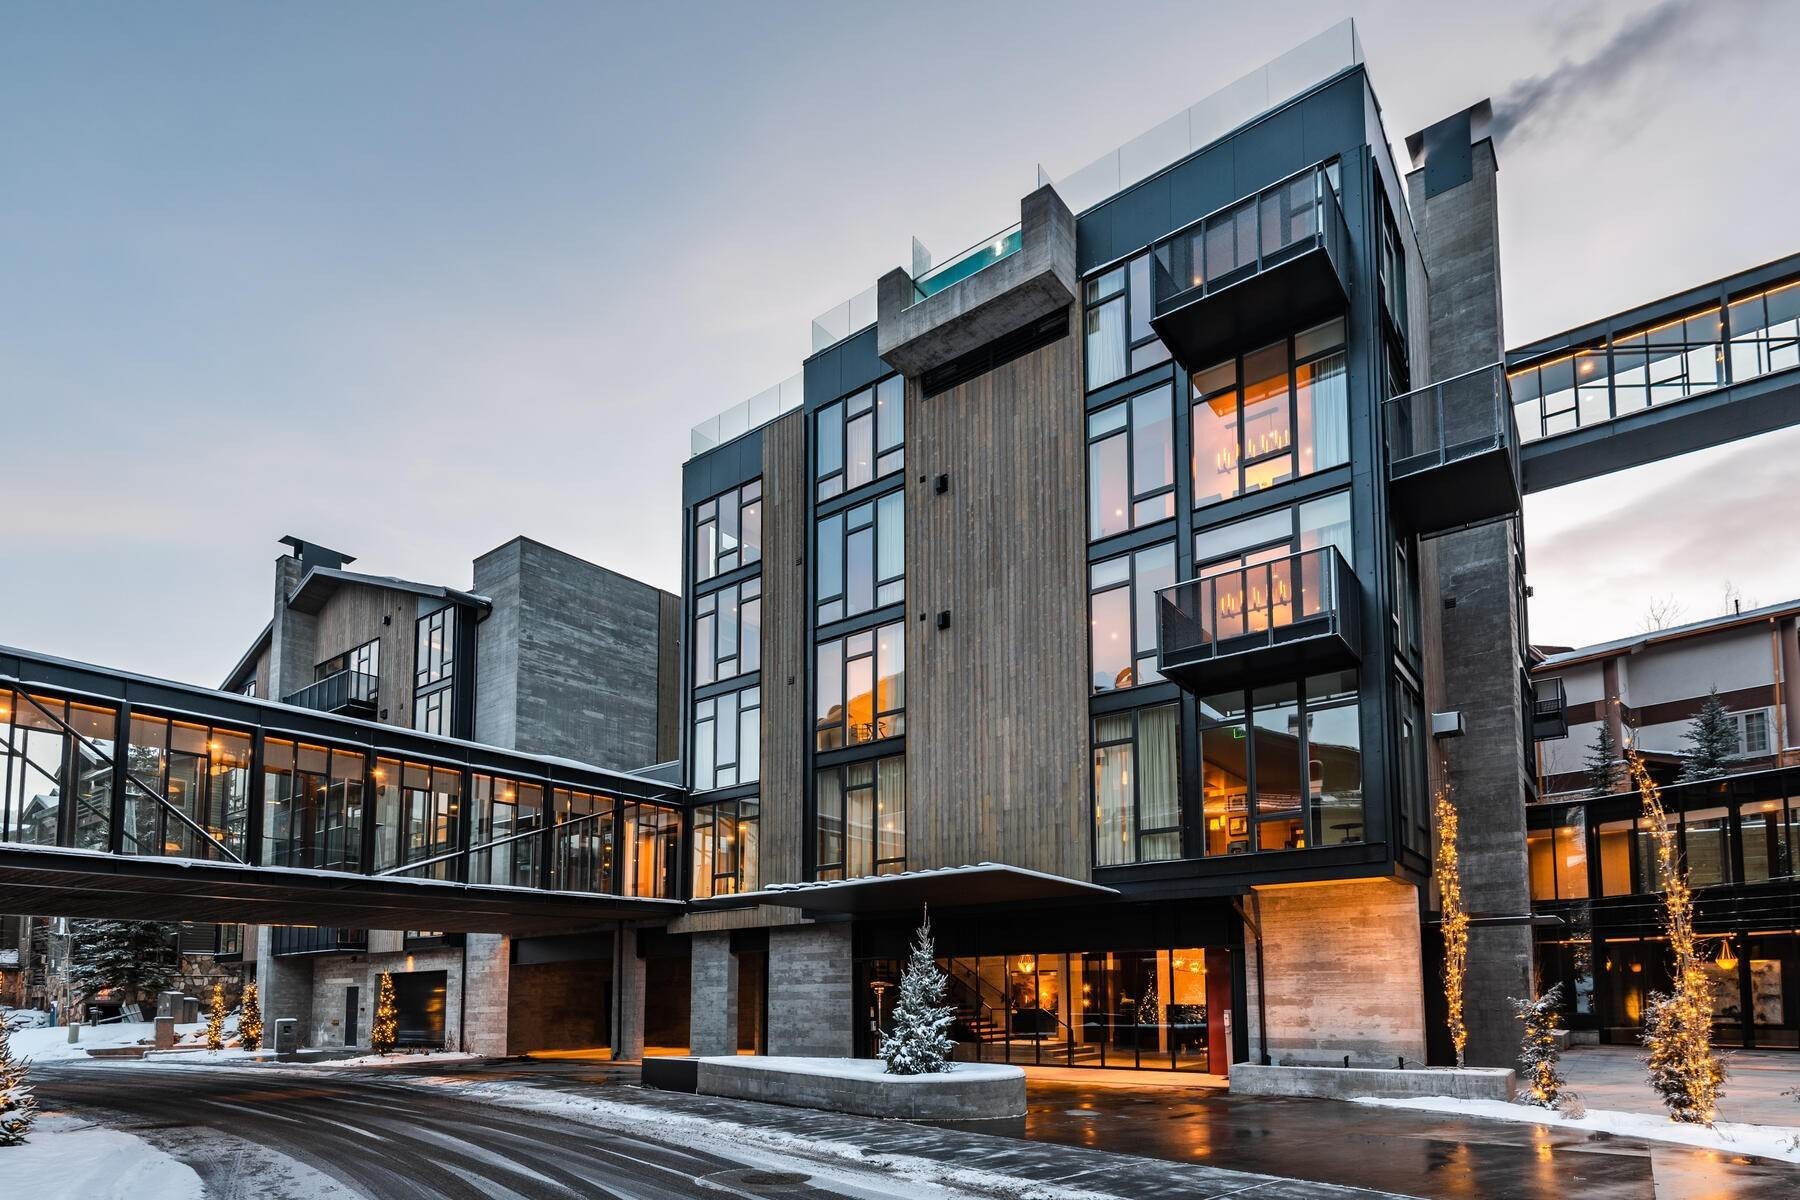 Condominiums for Sale at Boutique Luxury Hotel Residences in Prime Deer Valley Silver Lake Village 7520 Royal Street #223 Park City, Utah 84060 United States